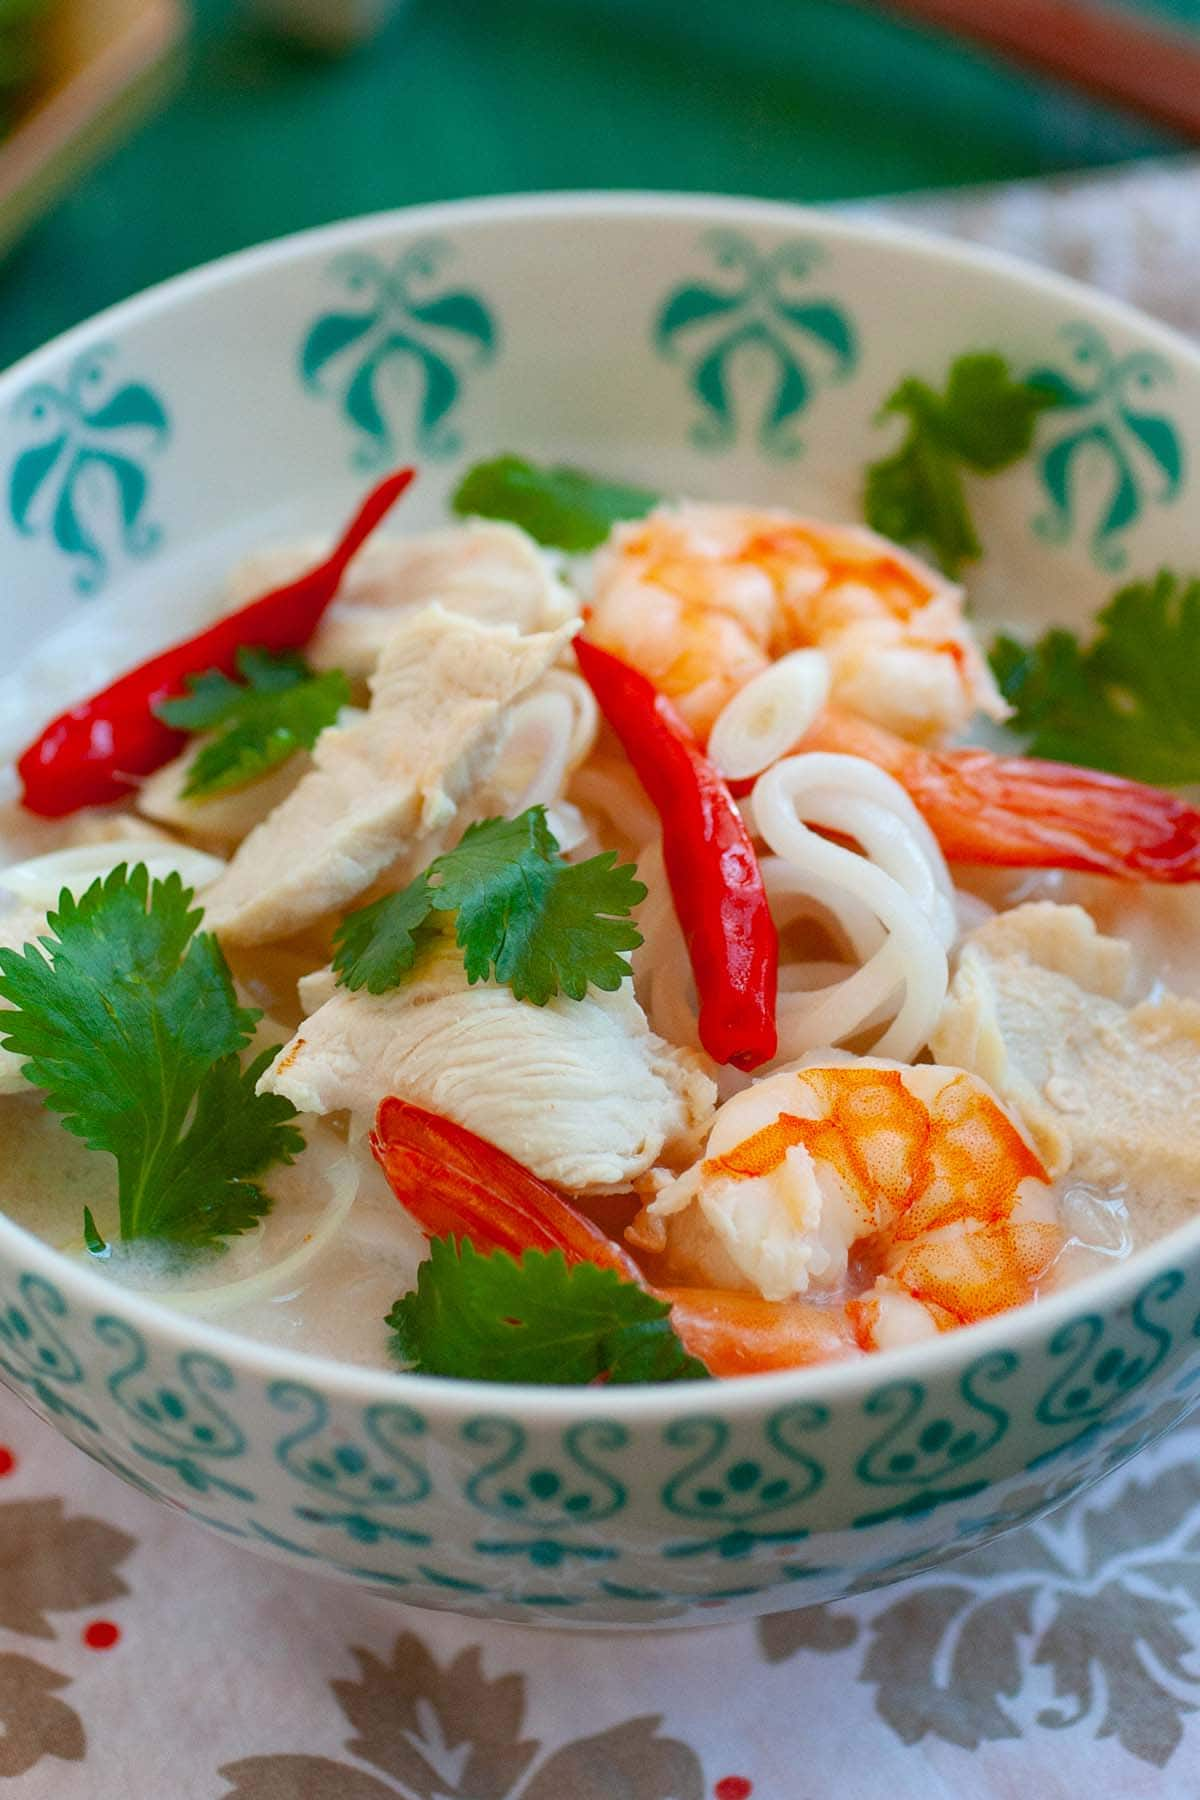 Coconut and lime noodle soup. This Thai-inspired noodle dish is infused with coconut, lime, and lemongrass. A hearty and tasty noodle dish.